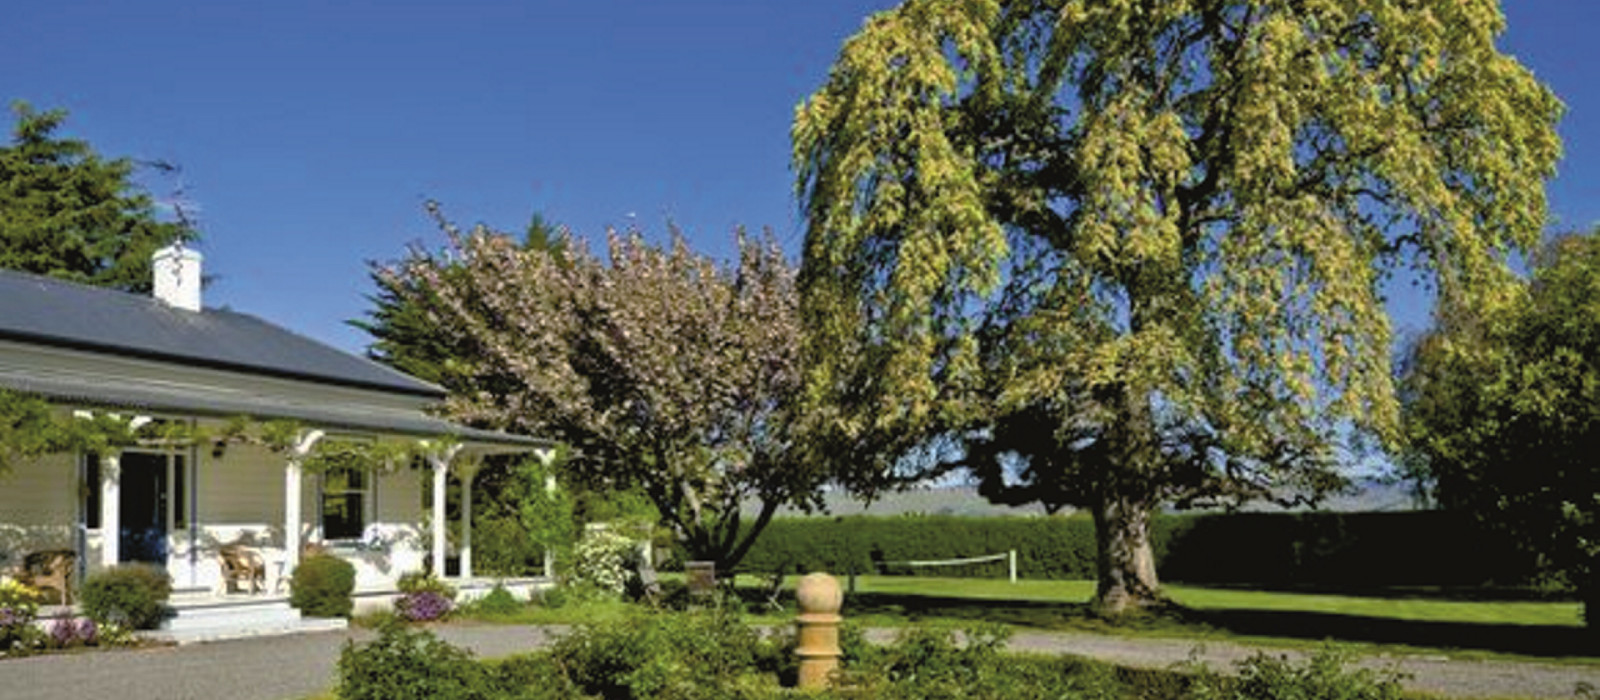 Hotel St Leonards Vineyard Cottages New Zealand